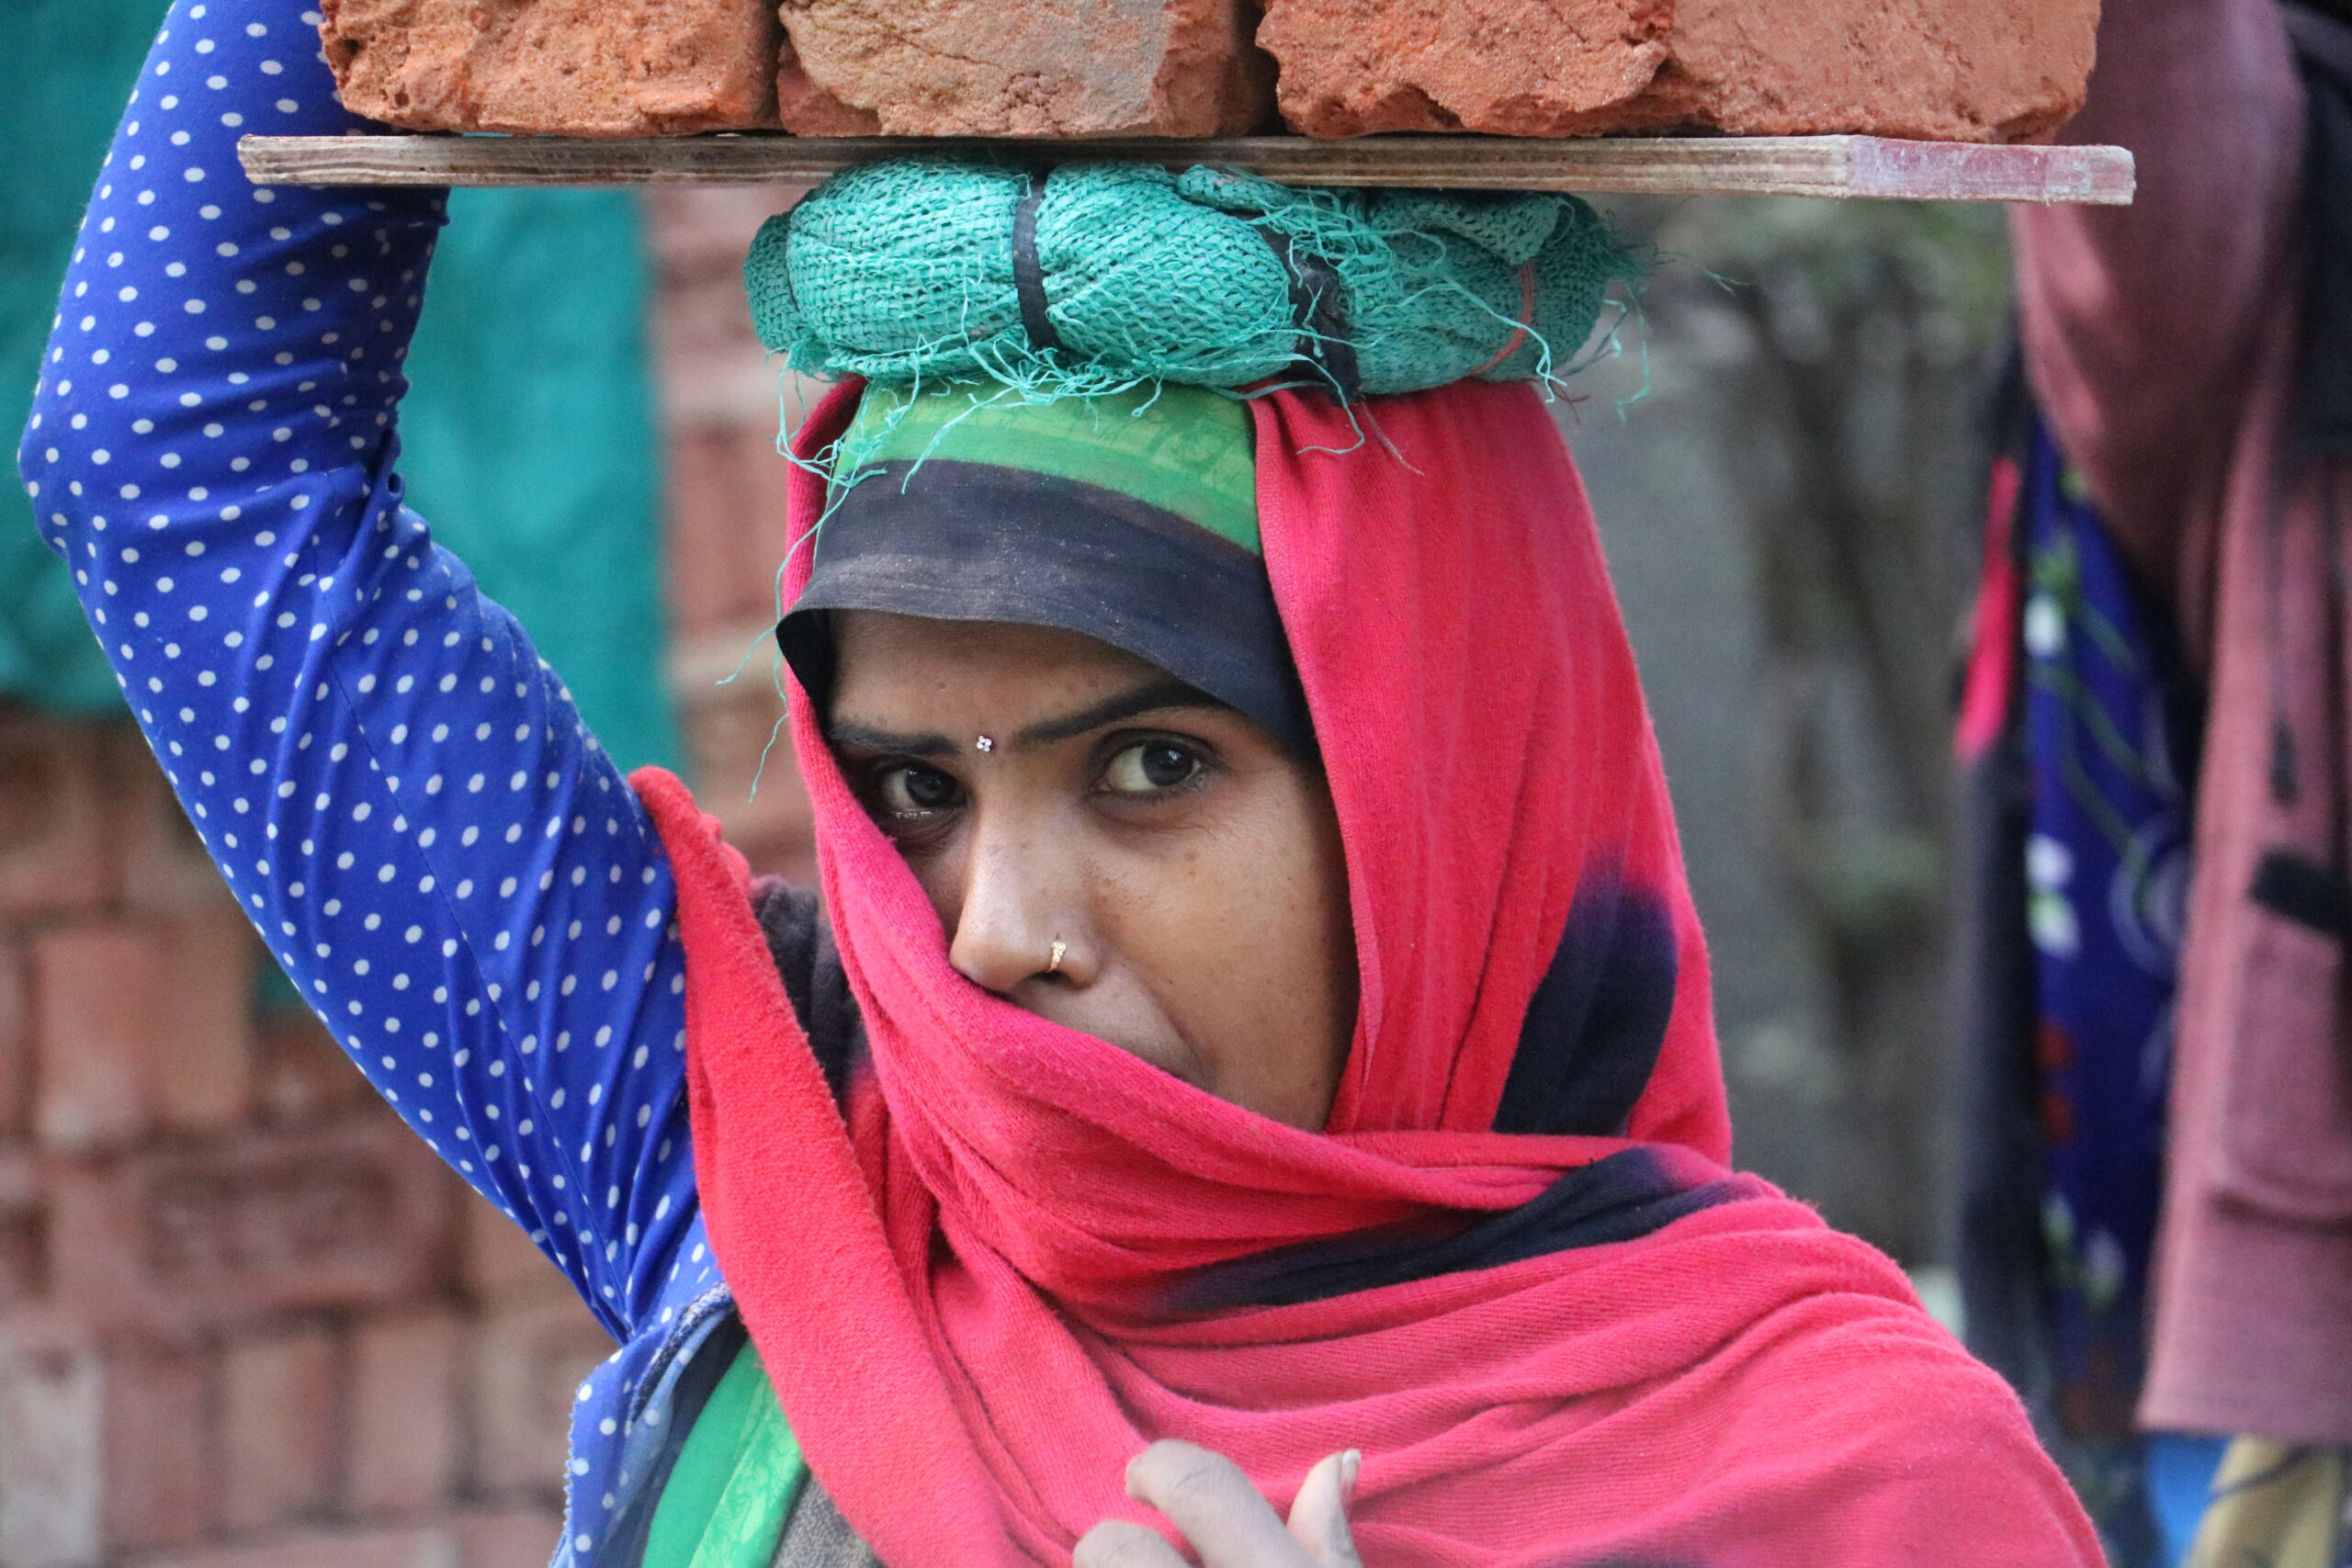 Negotiating with patriarchy, one veil at a time